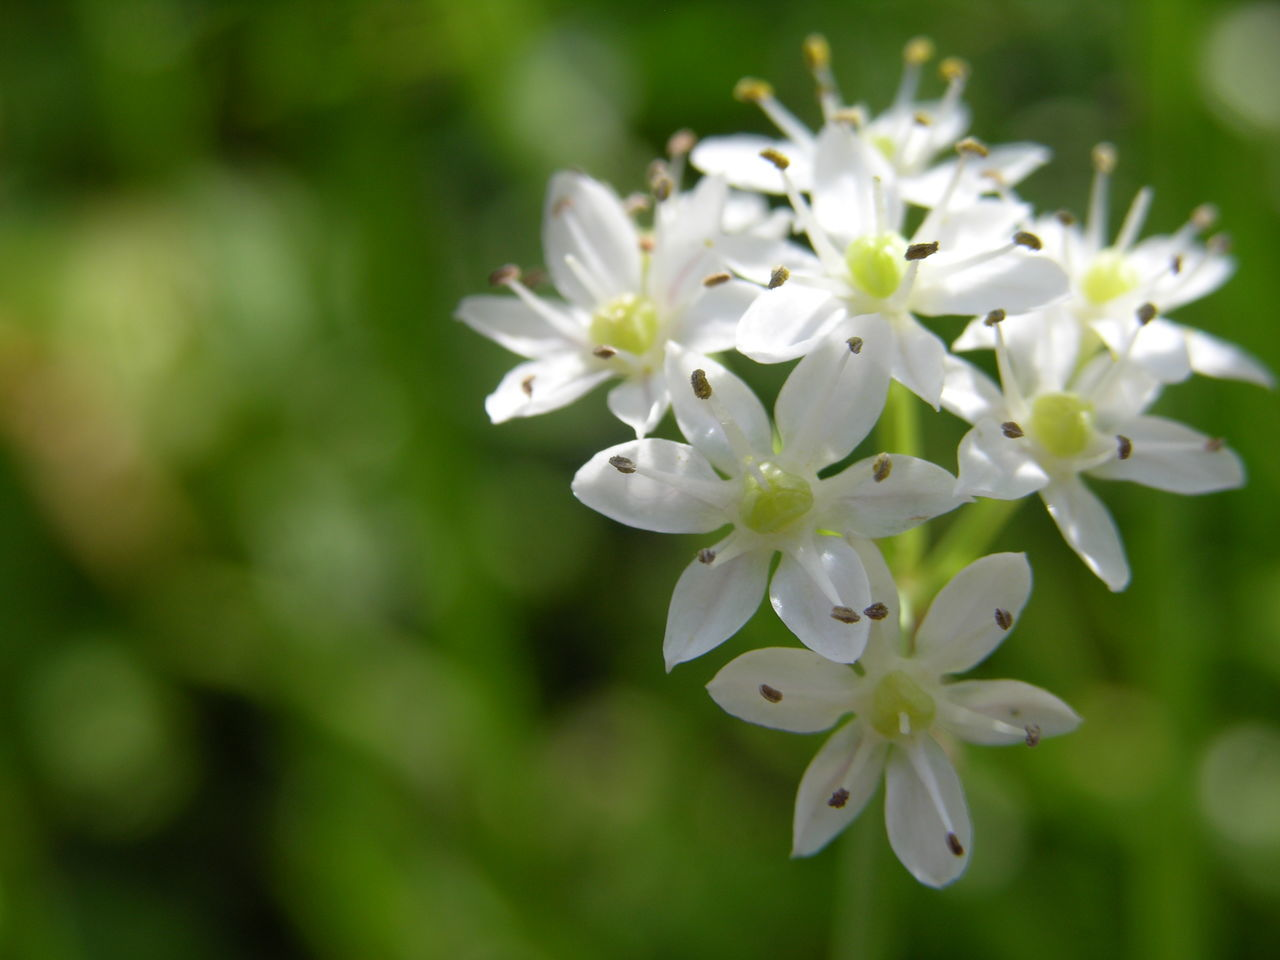 flower, nature, white color, beauty in nature, fragility, growth, petal, no people, freshness, close-up, blooming, day, springtime, plant, flower head, outdoors, tree